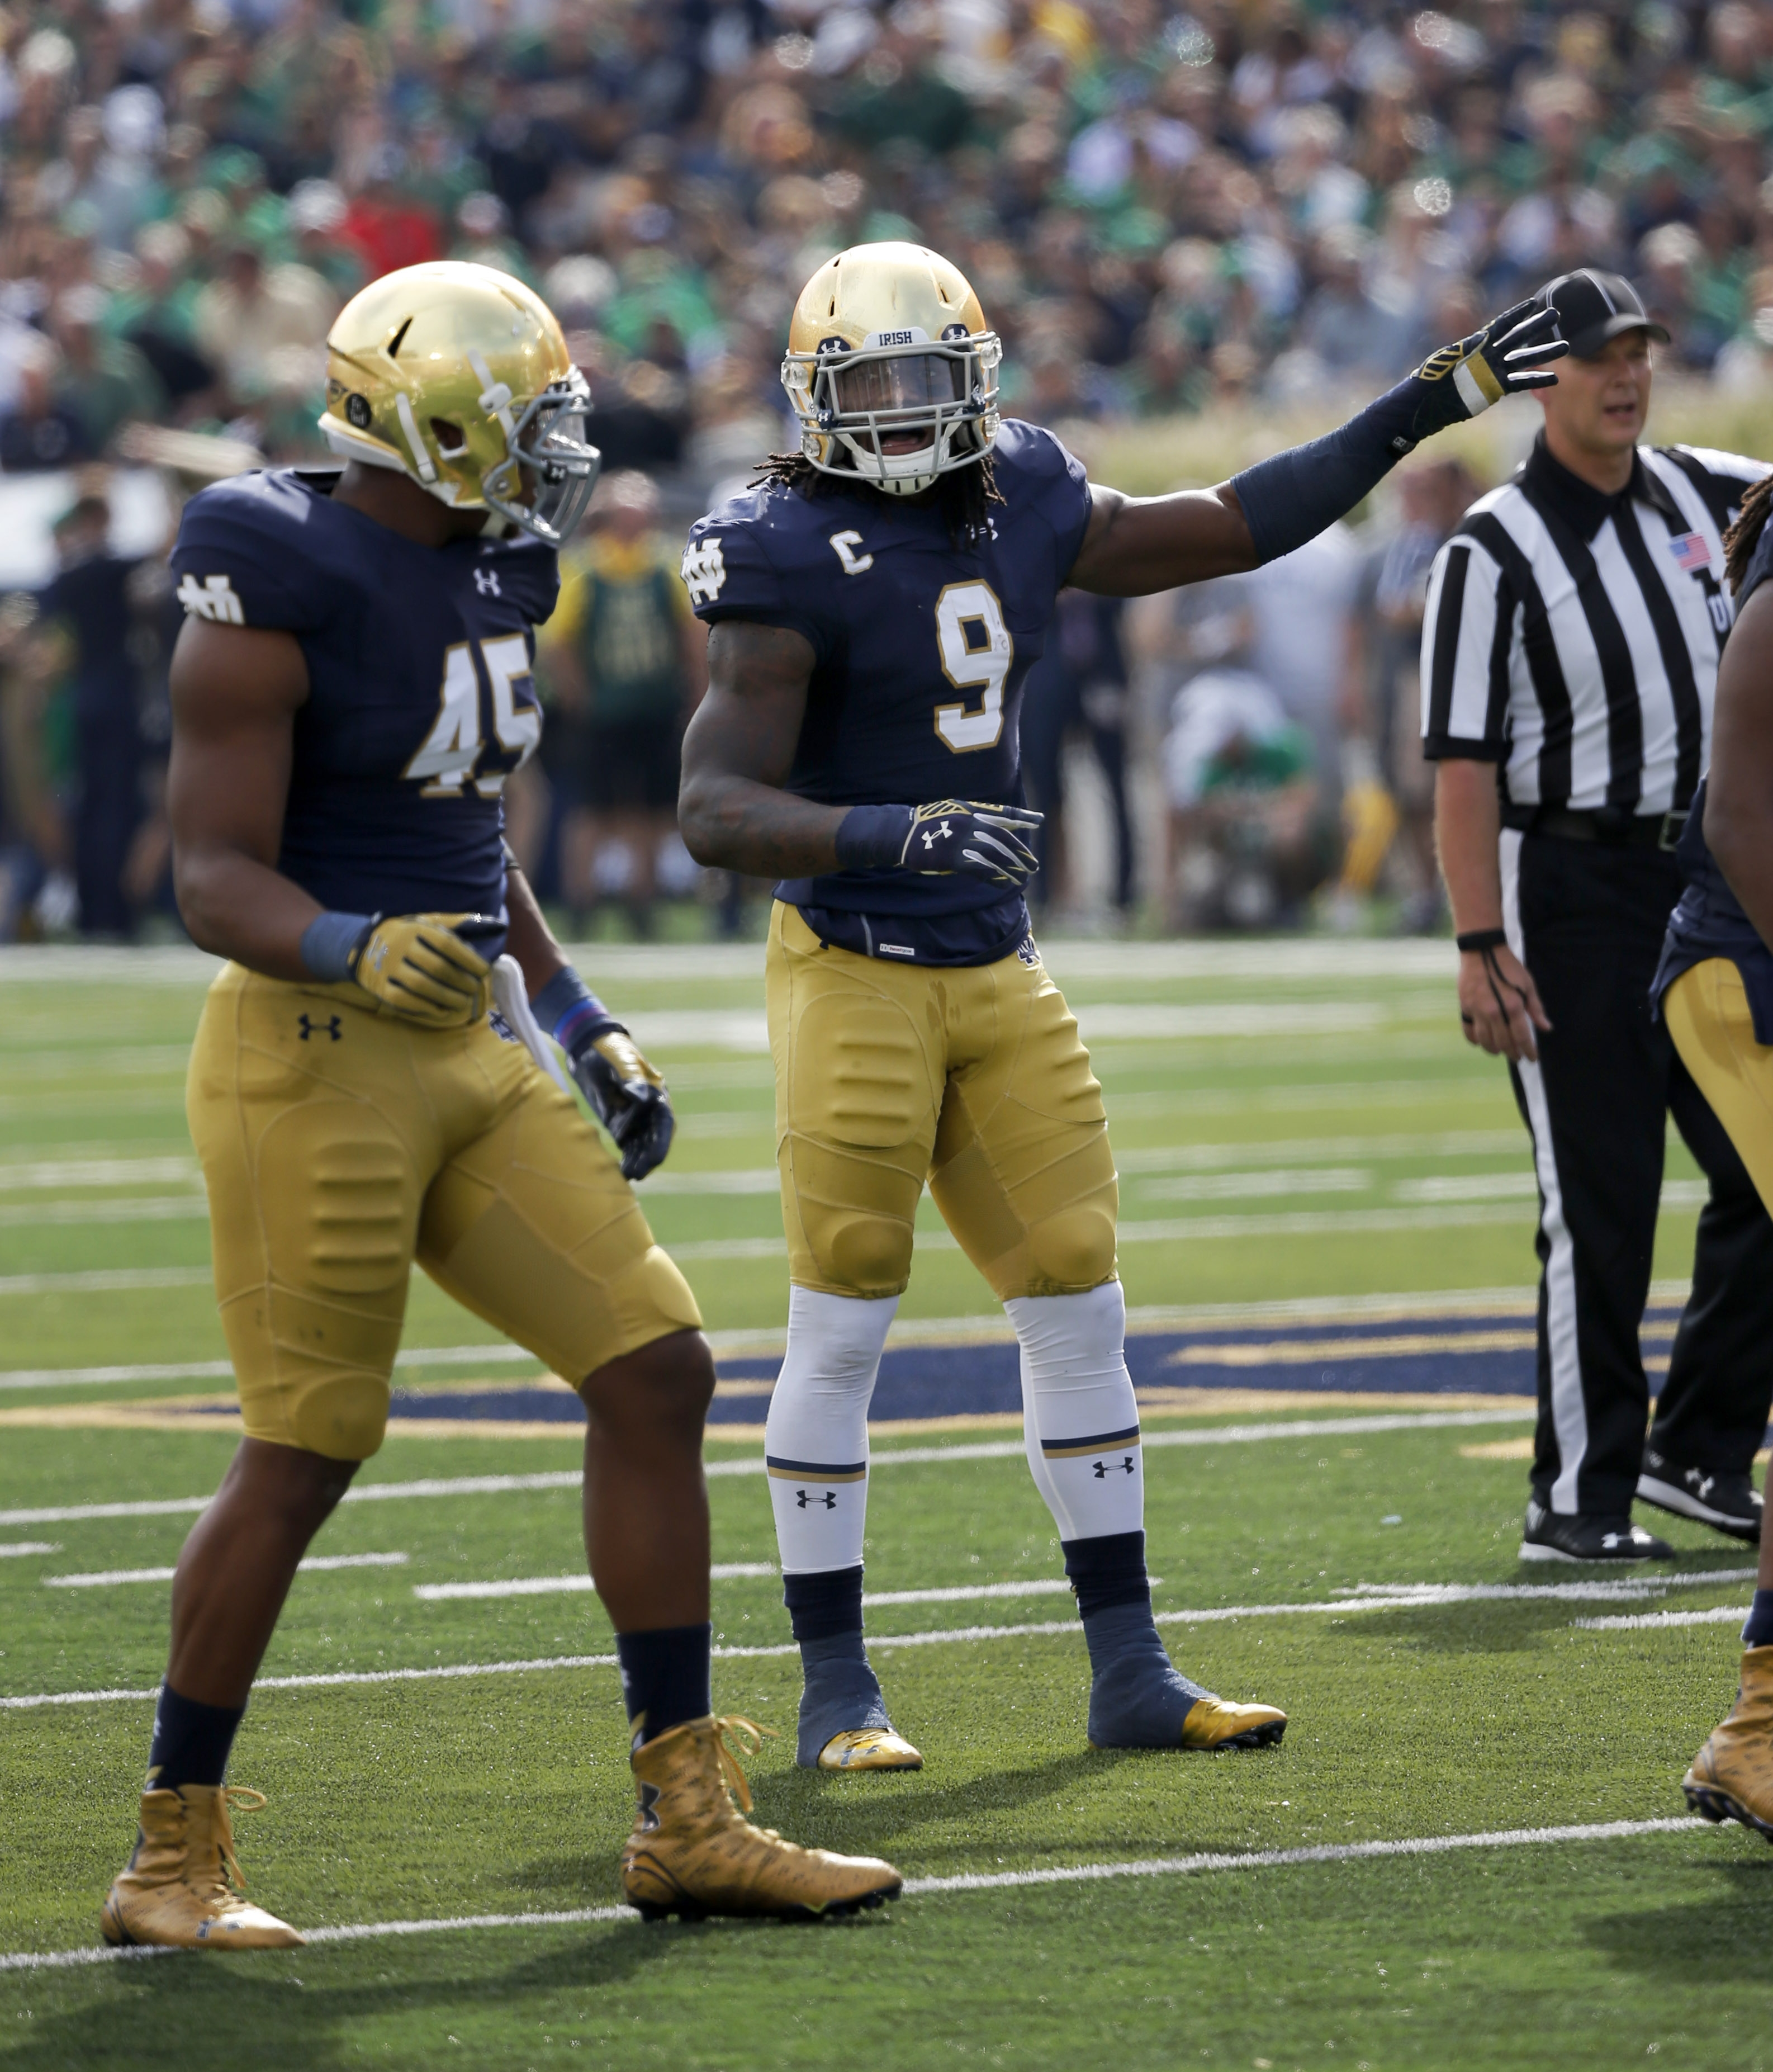 In this Saturday, Sept. 26, 2015 photo, Notre Dame linebacker Jaylon Smith calls out defensive alignments during the first half of an NCAA college football game against  Massachusetts, in South Bend, Ind. Jaylon Smith is hard to keep track of. Sometimes h